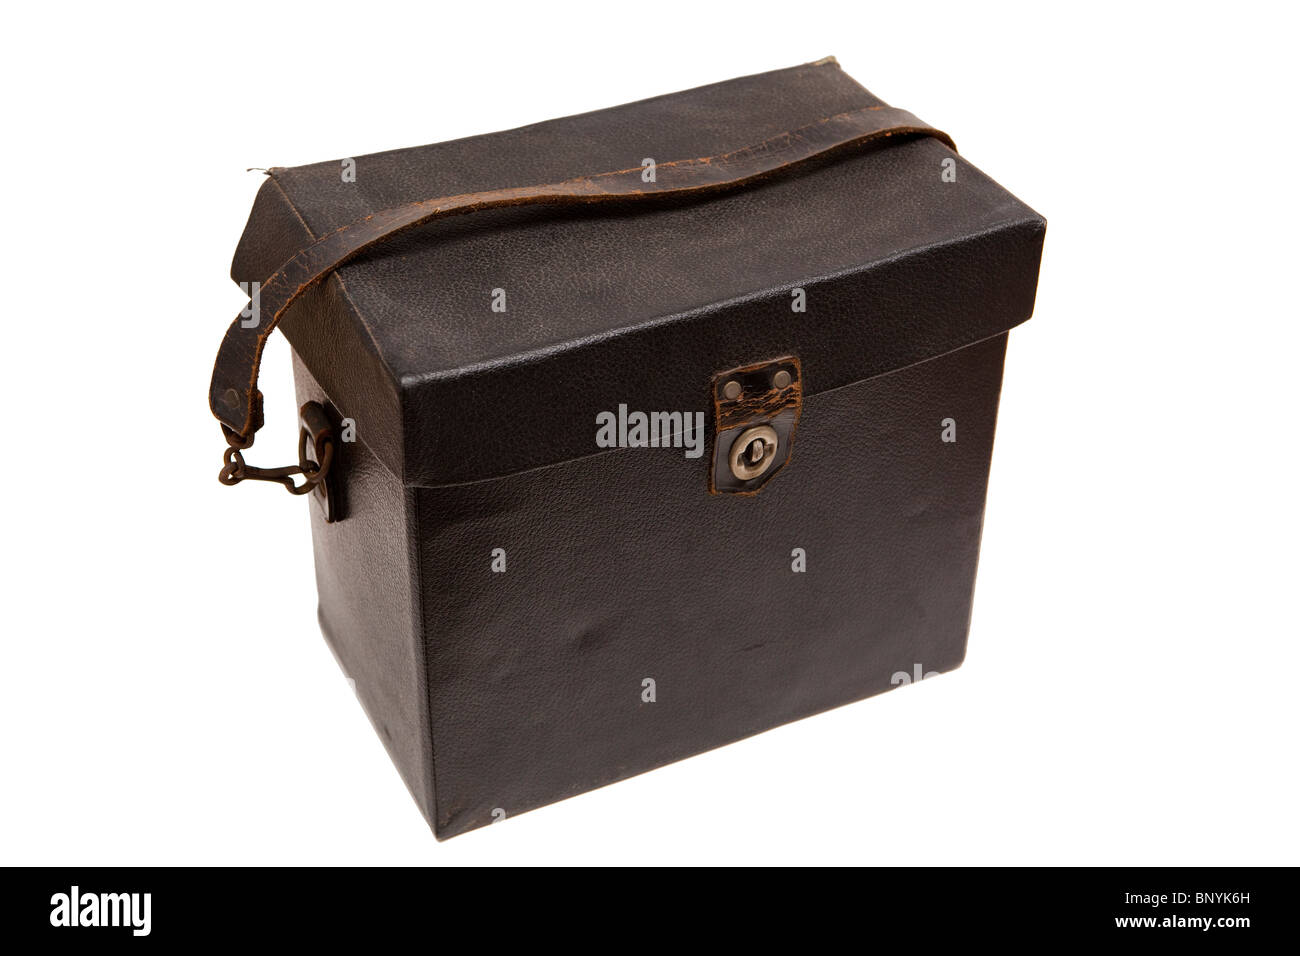 boxes, old black leather bound box - Stock Image